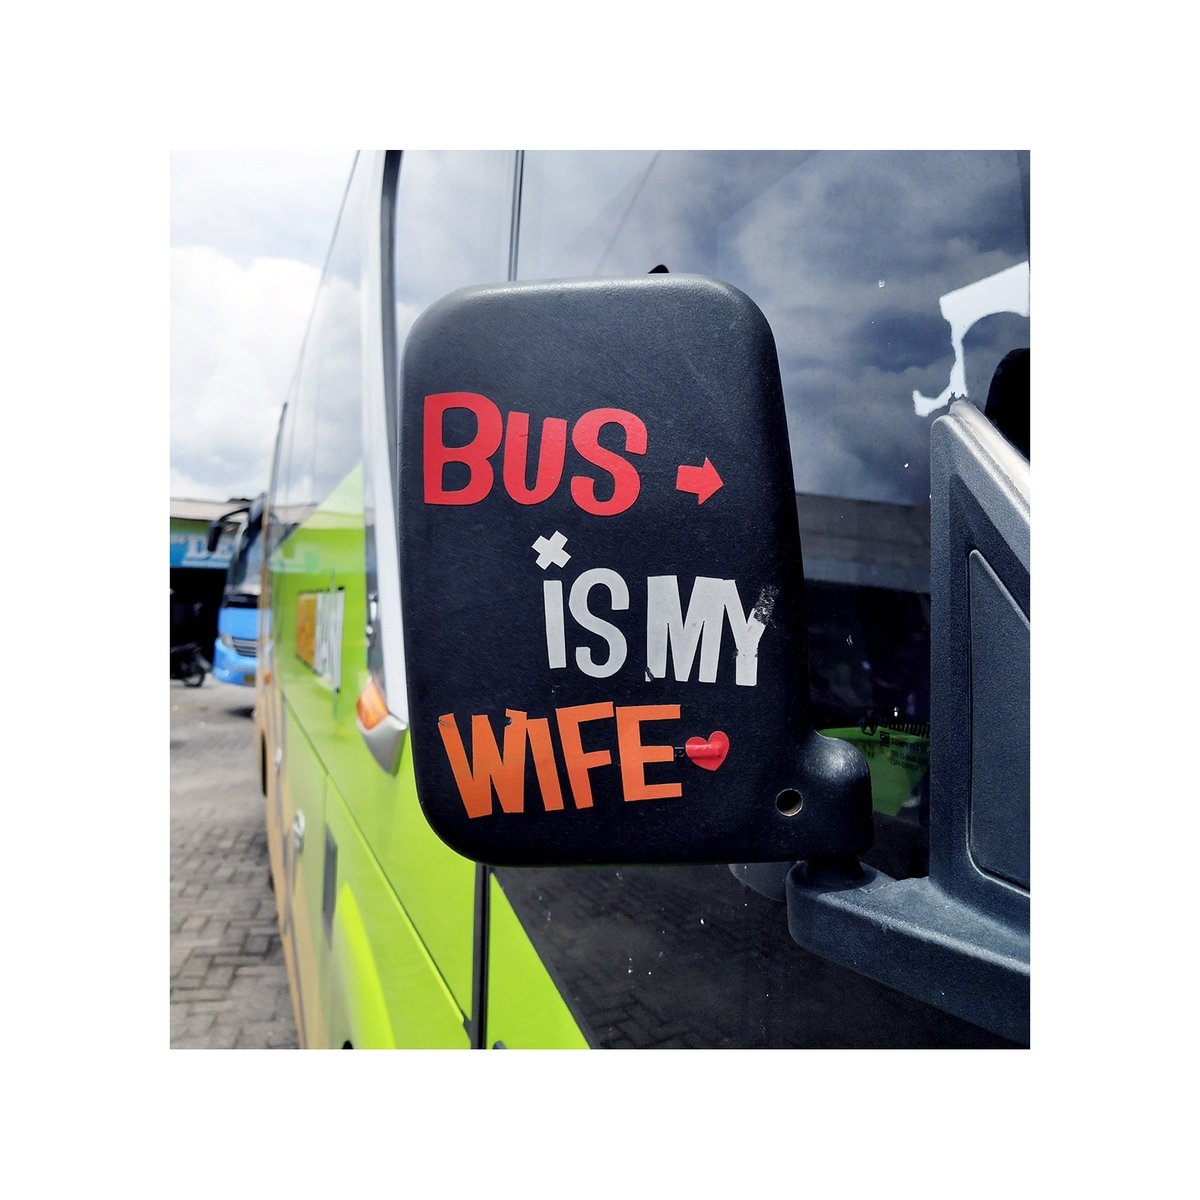 Bus is my wife and TAYO is my son  #jumatpuisi  <br>http://pic.twitter.com/6Nb1fVjZ4E